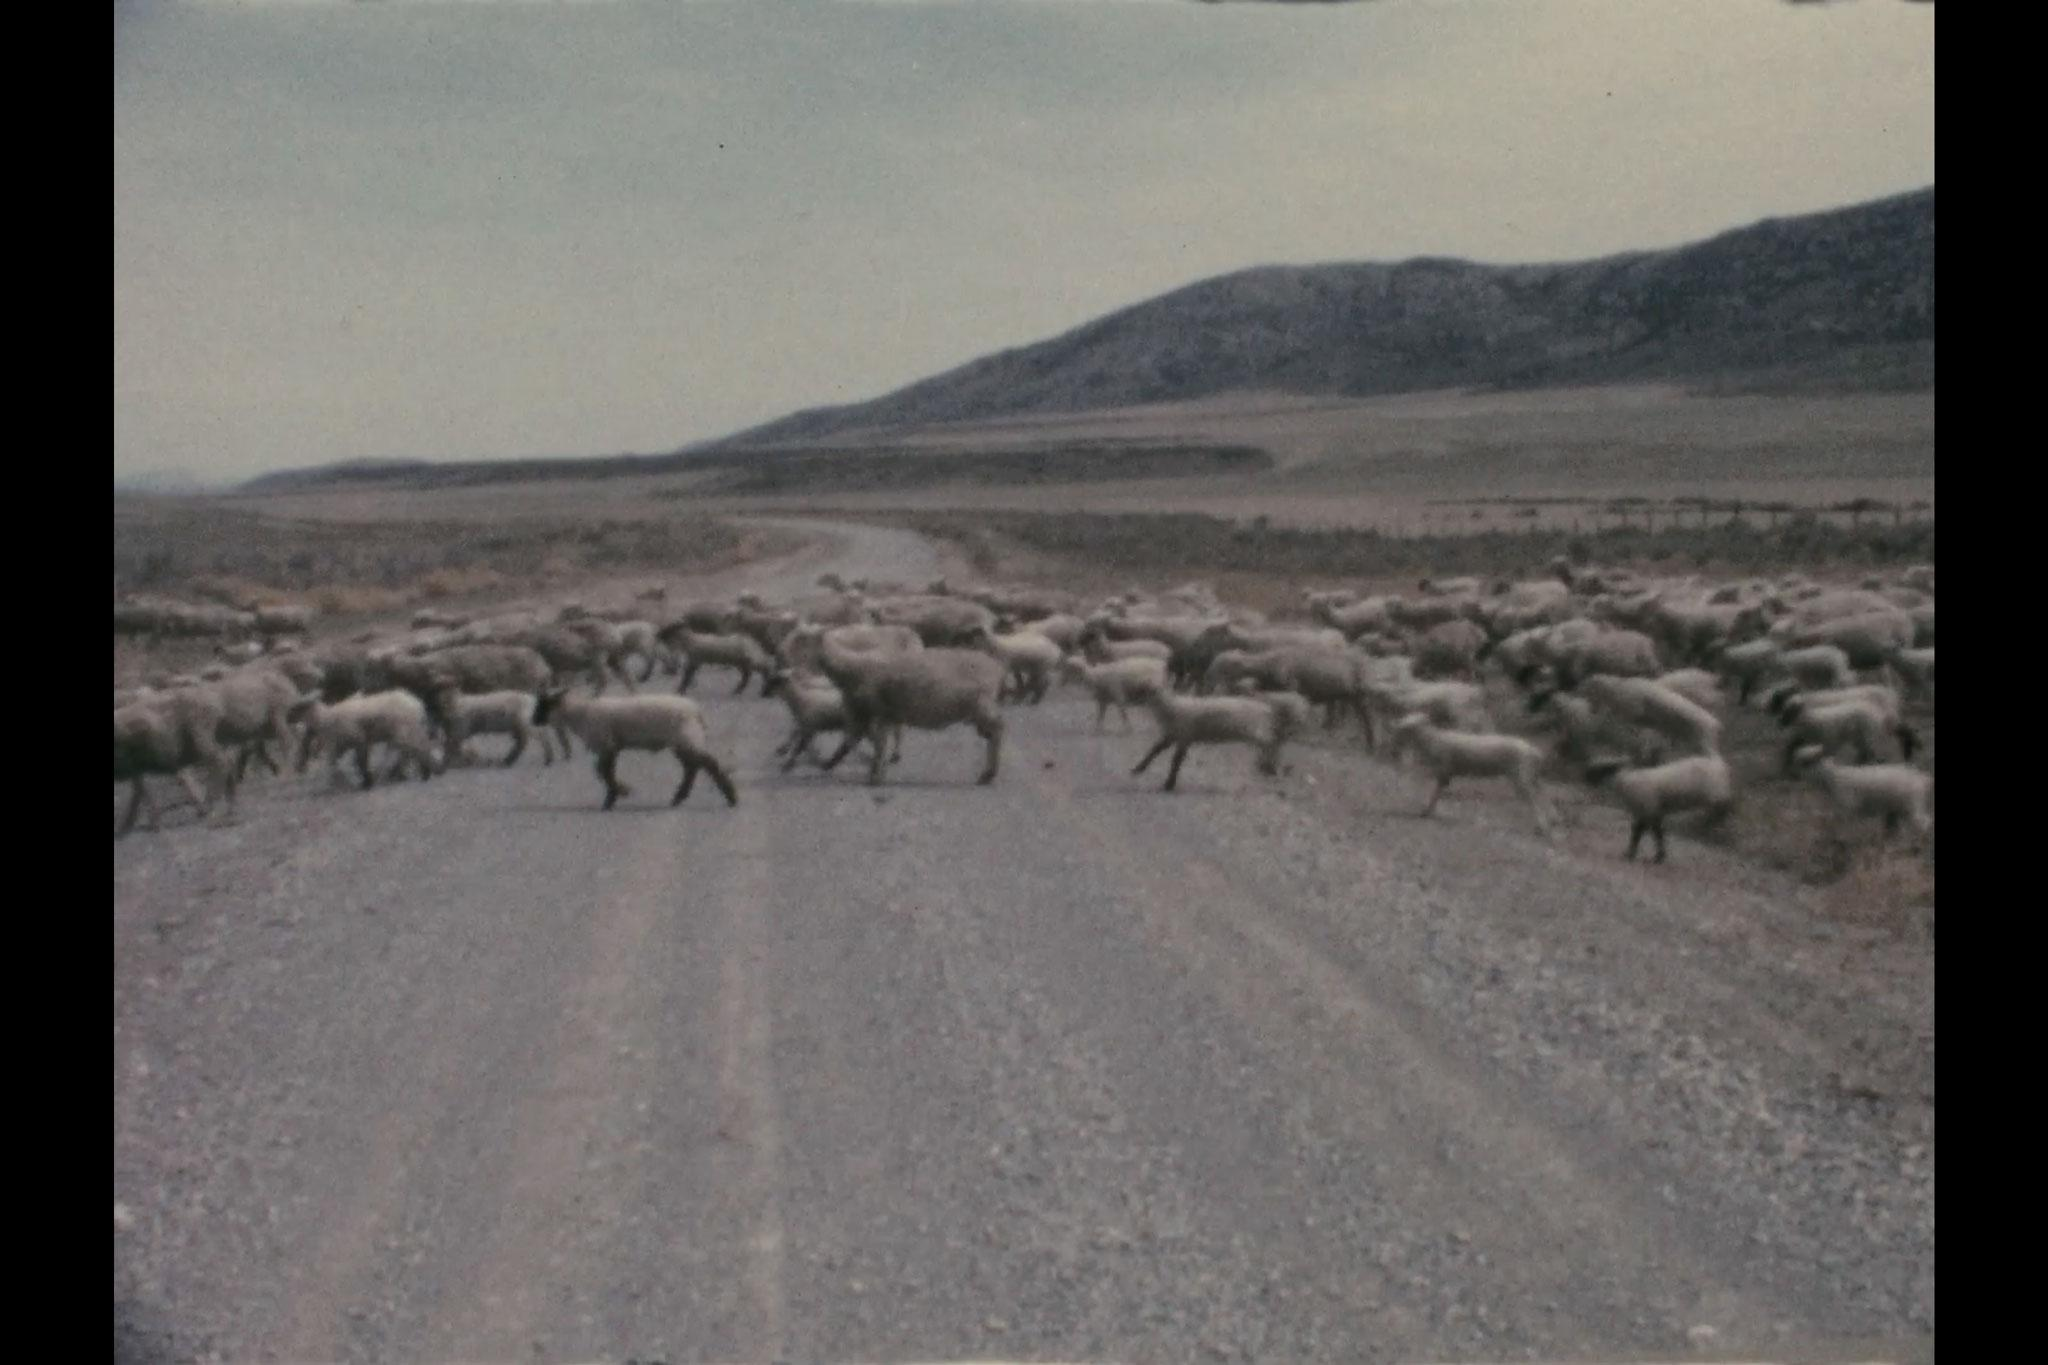 a large flock of sheep crossing a dirt road